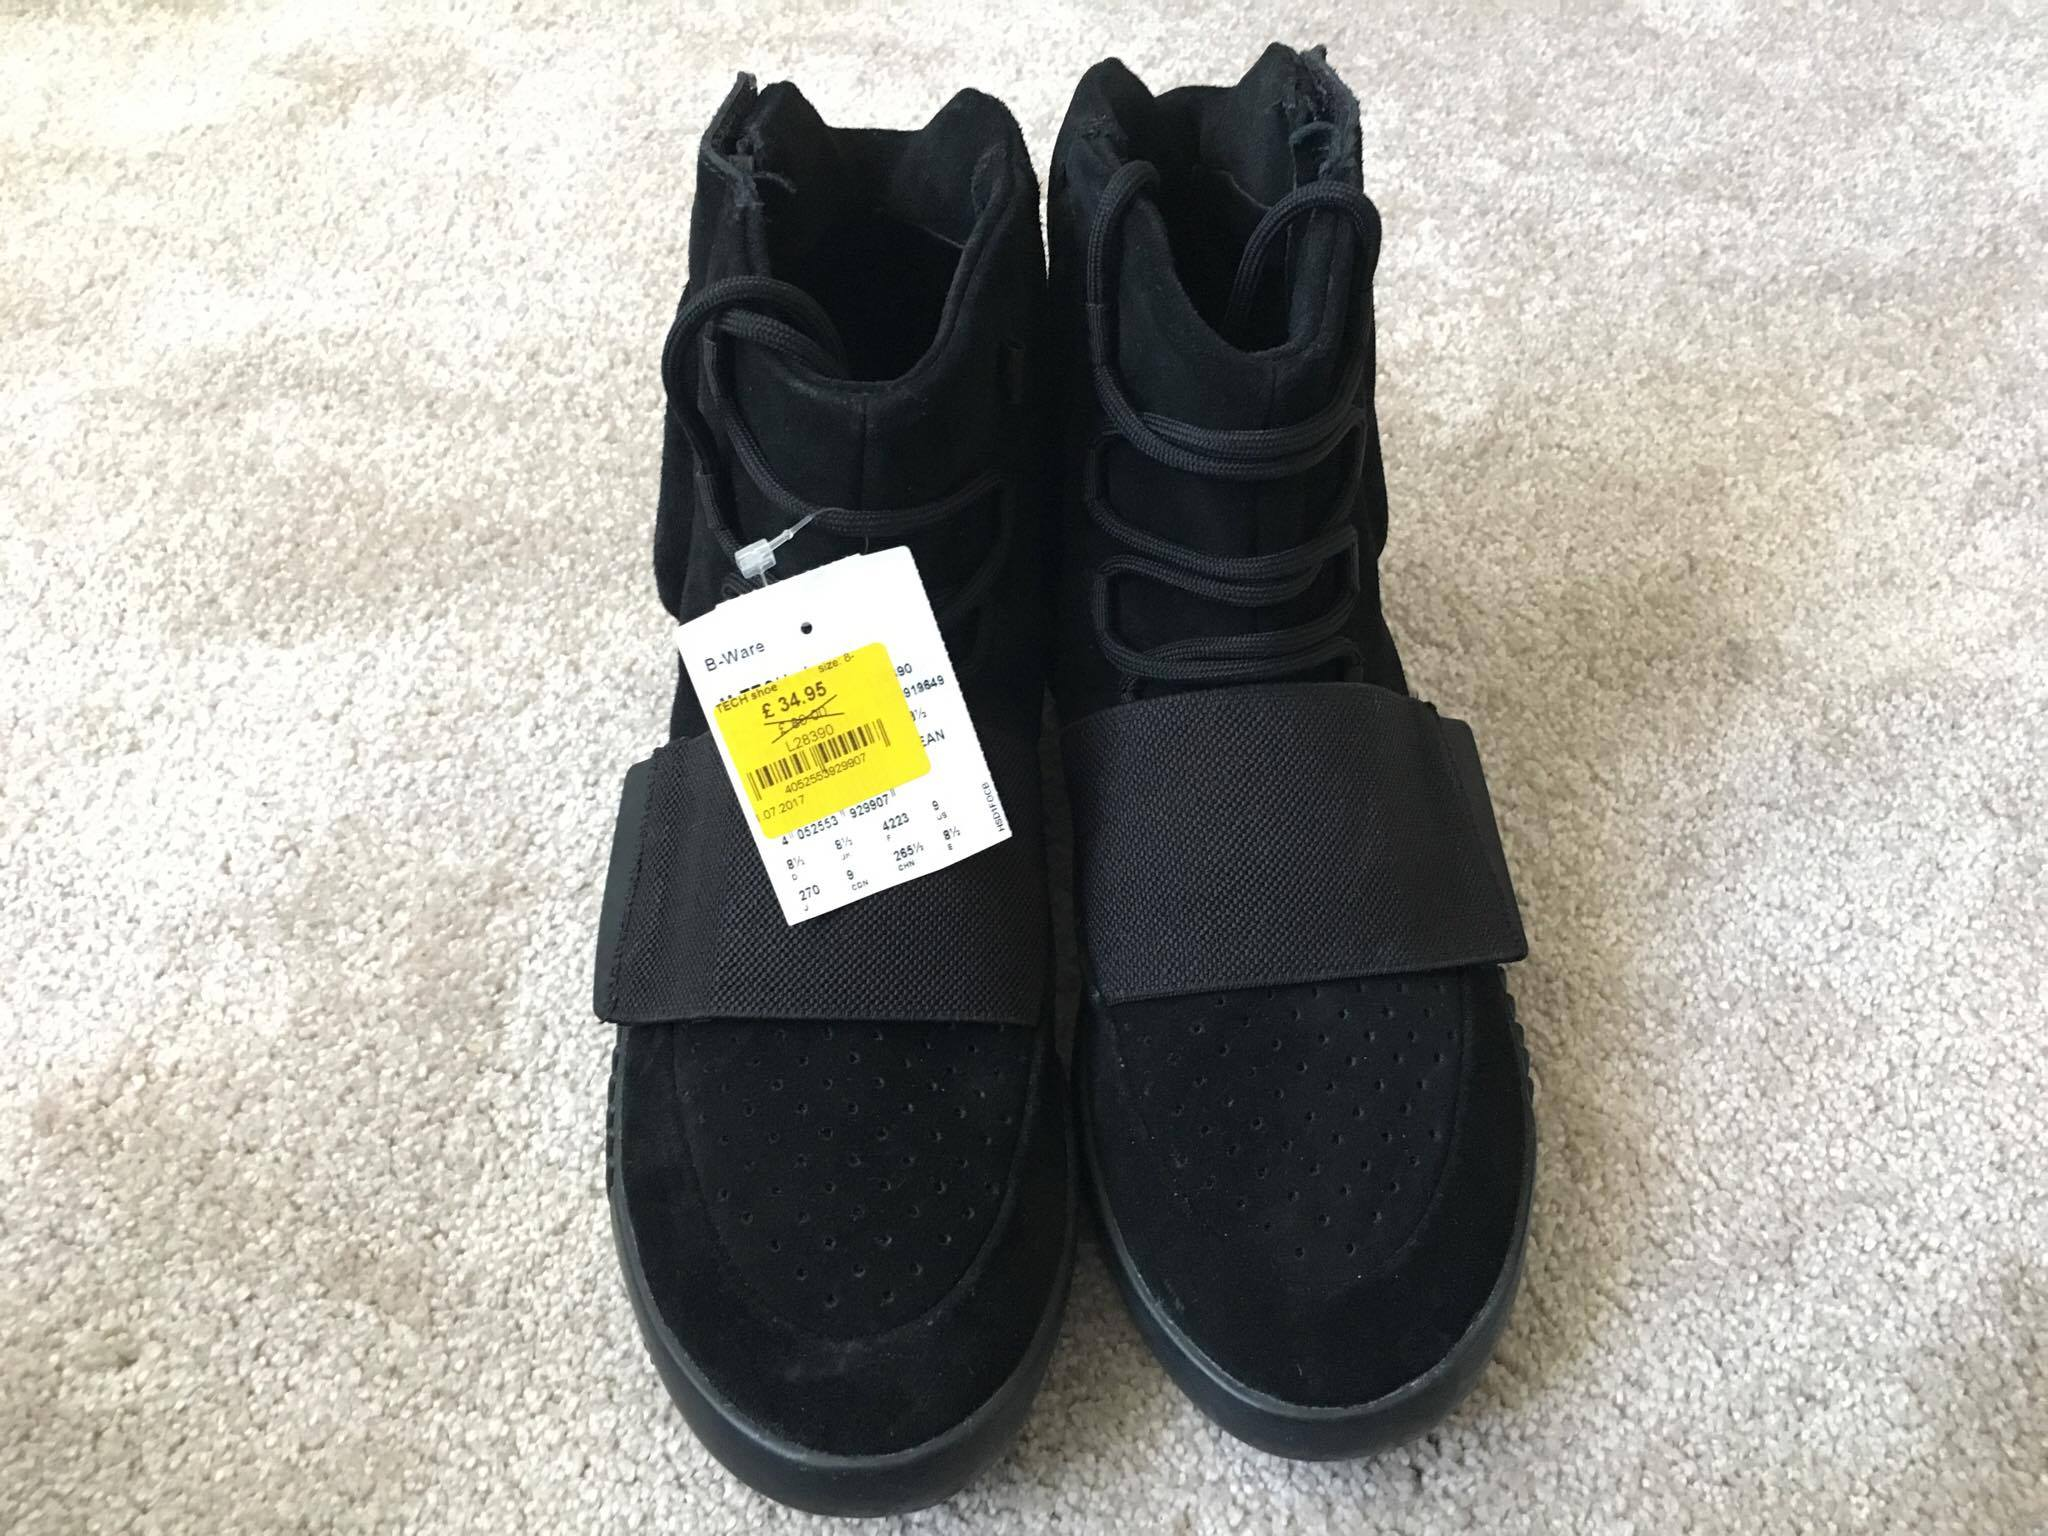 866b4f2b7c05ed Recent News. Triple Black and White Japan NMD Coming Out Real Soon! 2nd  August 2017 Triple Black and White Japan NMD Coming Out Real Soon!